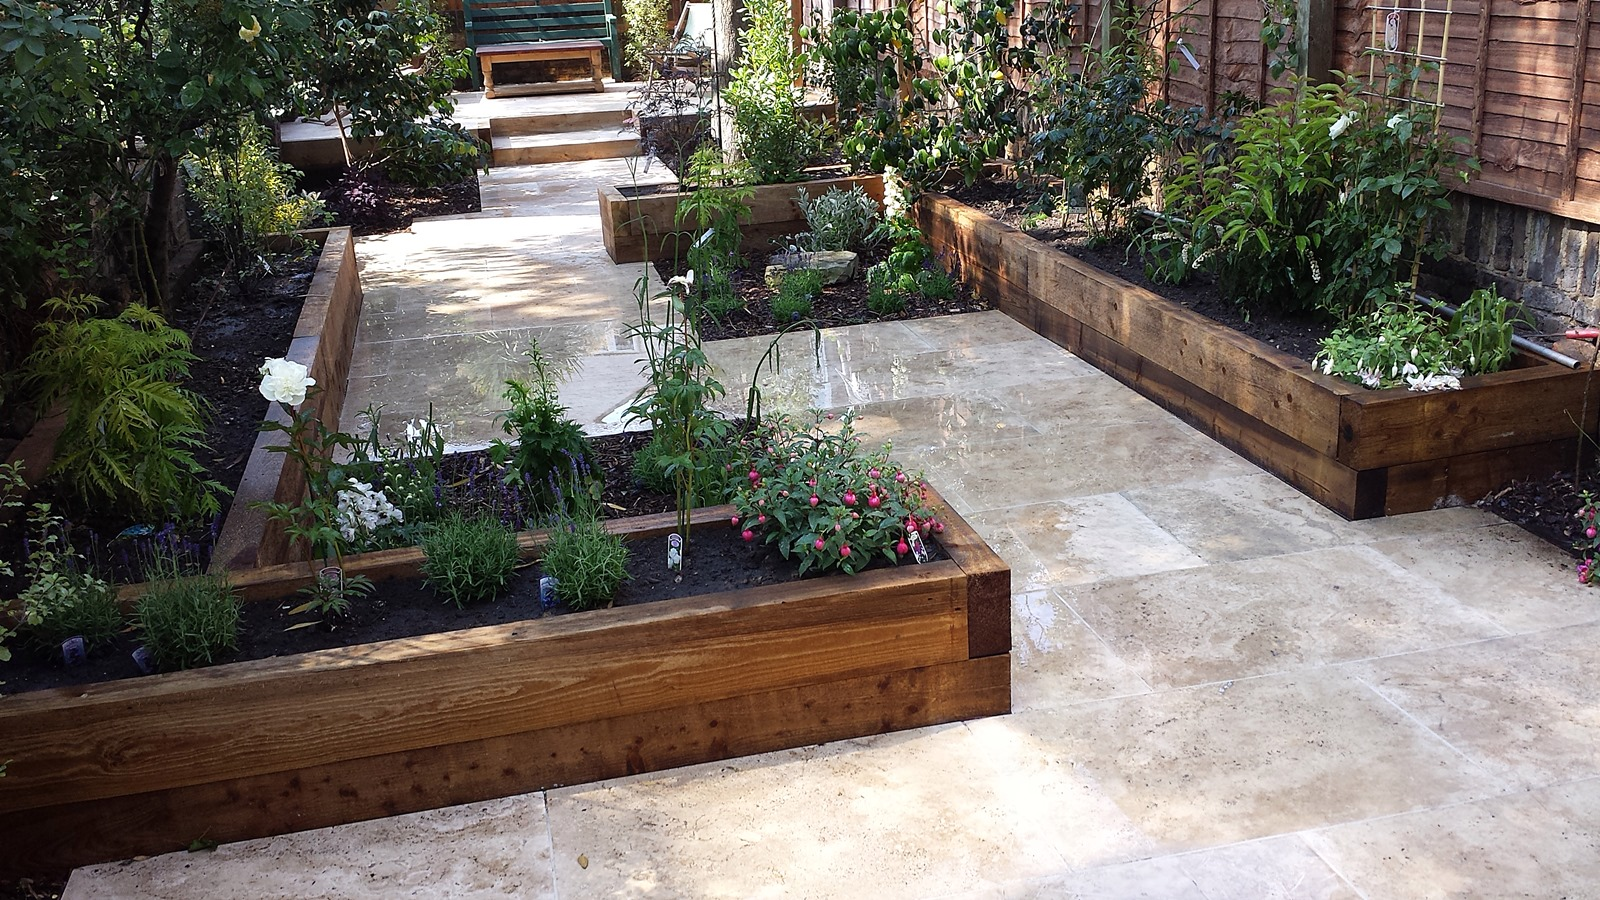 Travertine Paving Patio Modern Garden Design Landscaping ... on Modern Backyard Patio Ideas  id=51815